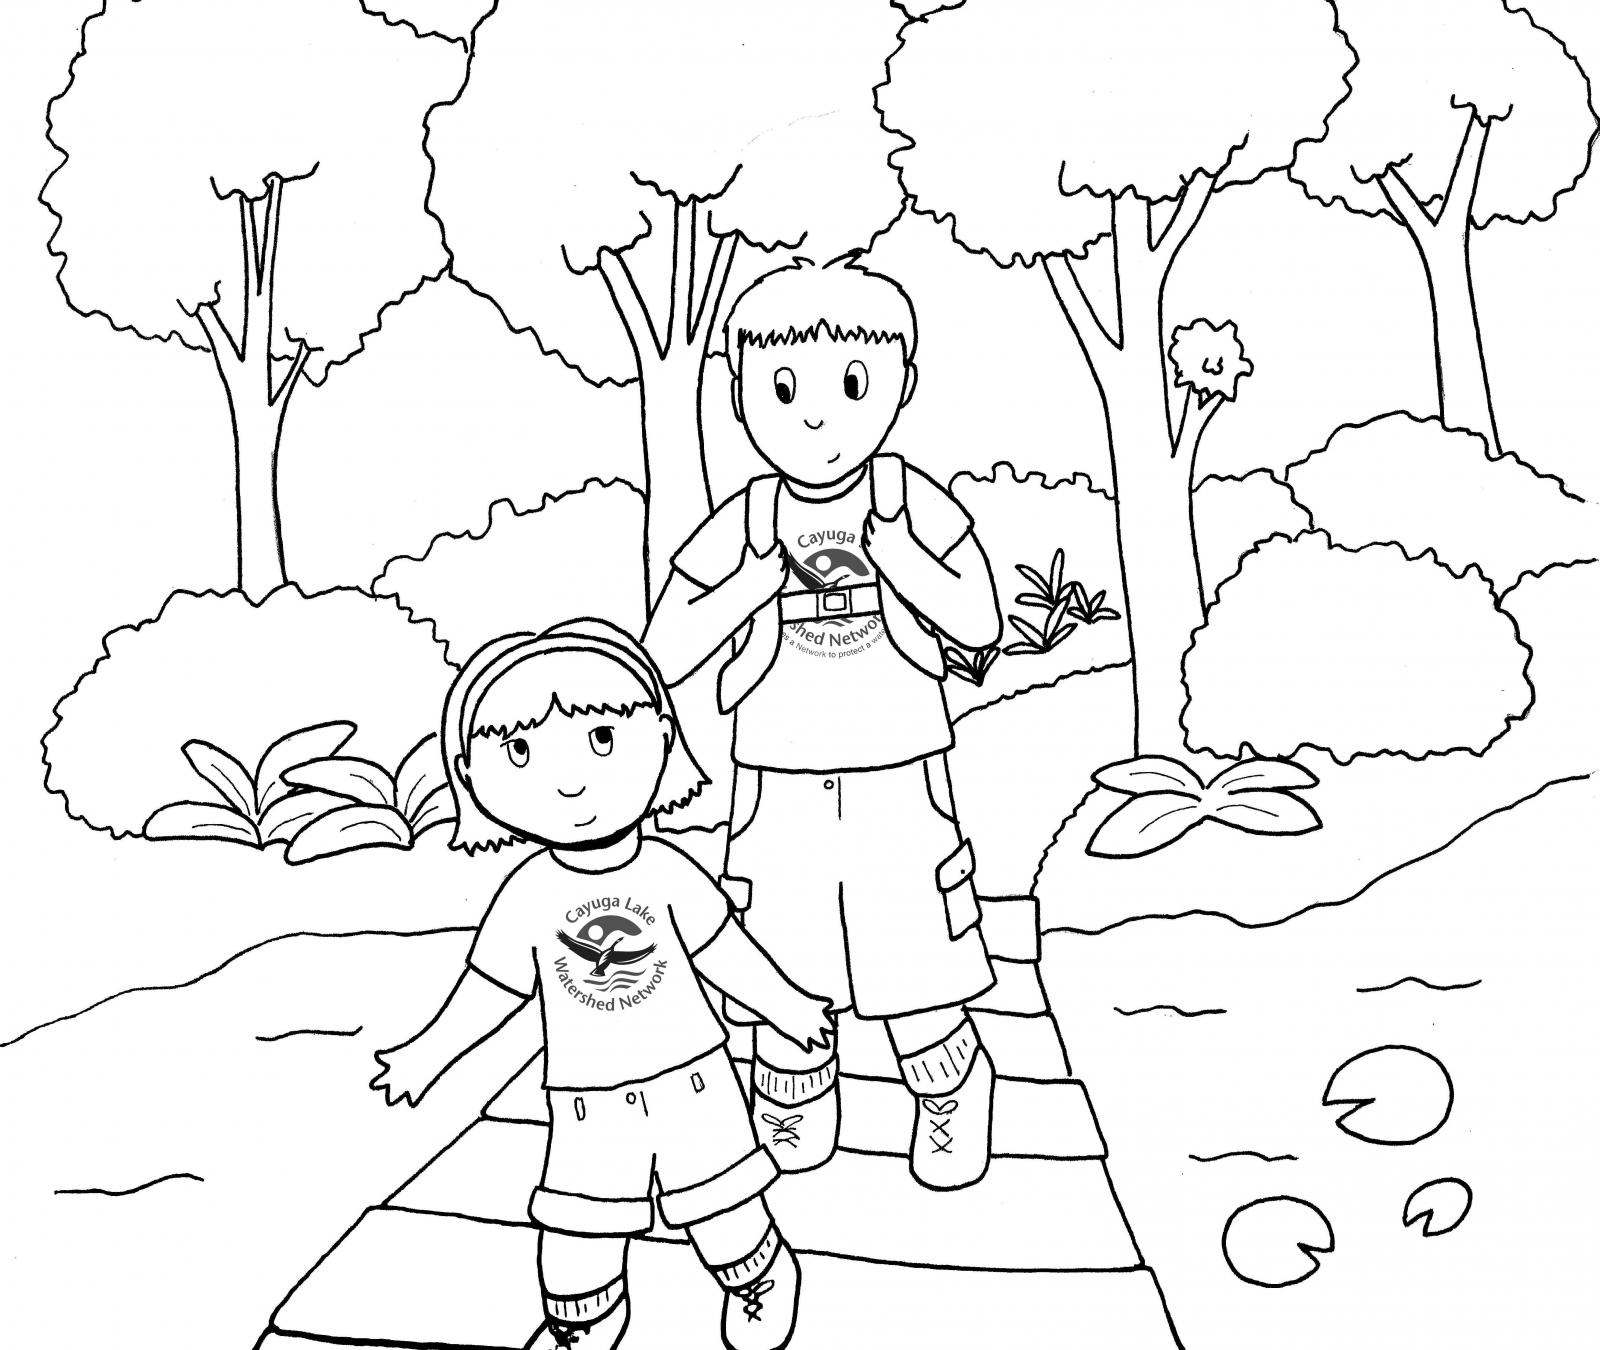 Wetlands Coloring Page At Getcolorings